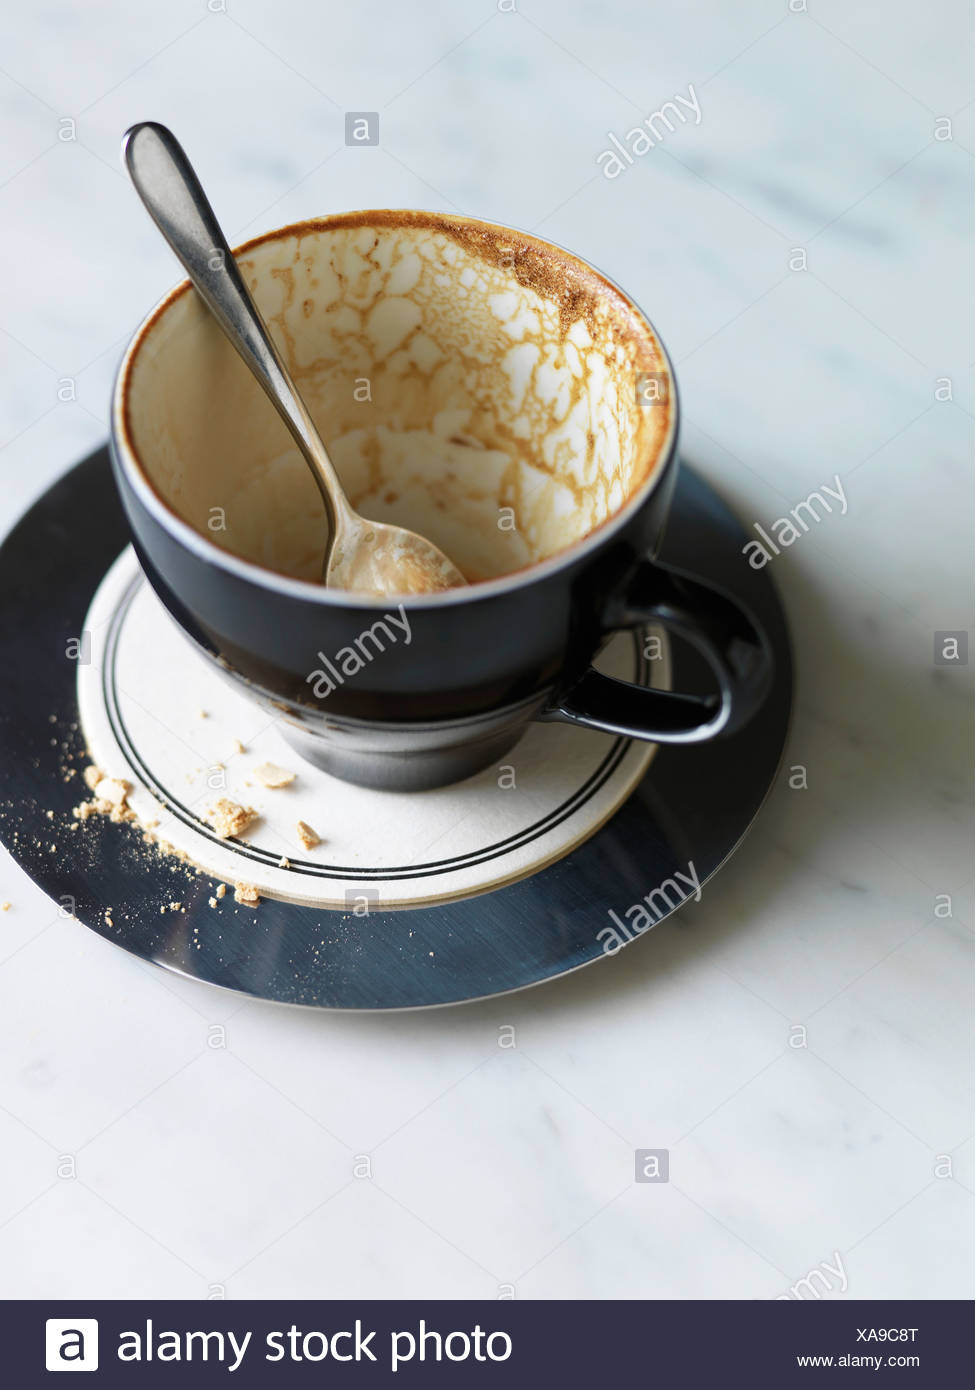 A finished cup of coffee - Stock Image